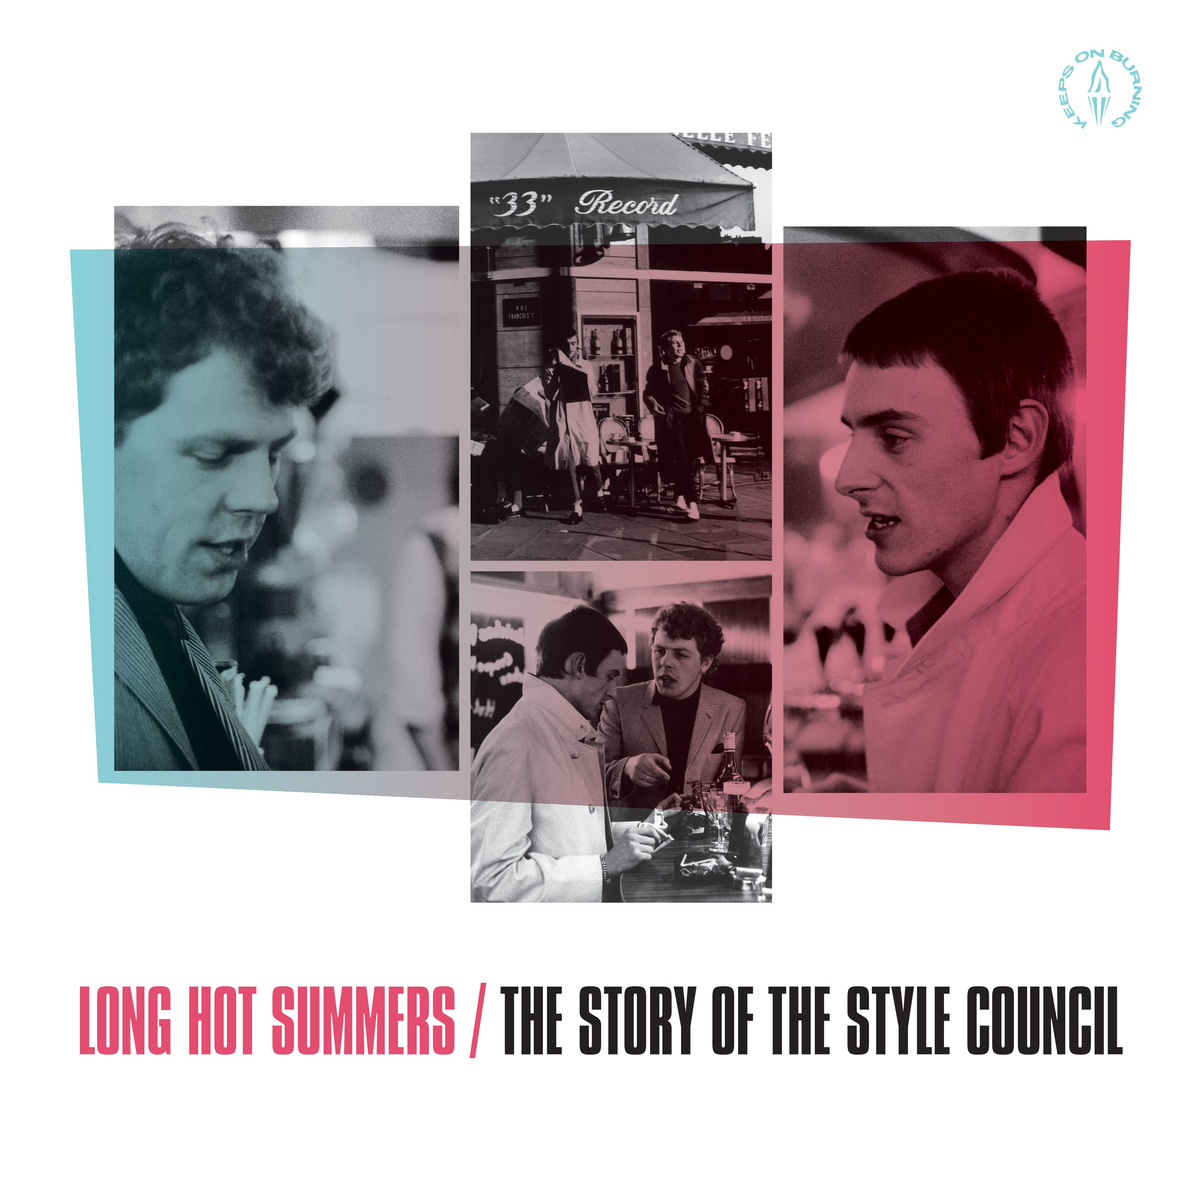 ALBUM REVIEW: The Style Council – Long Hot Summers: The Story of The Style Council